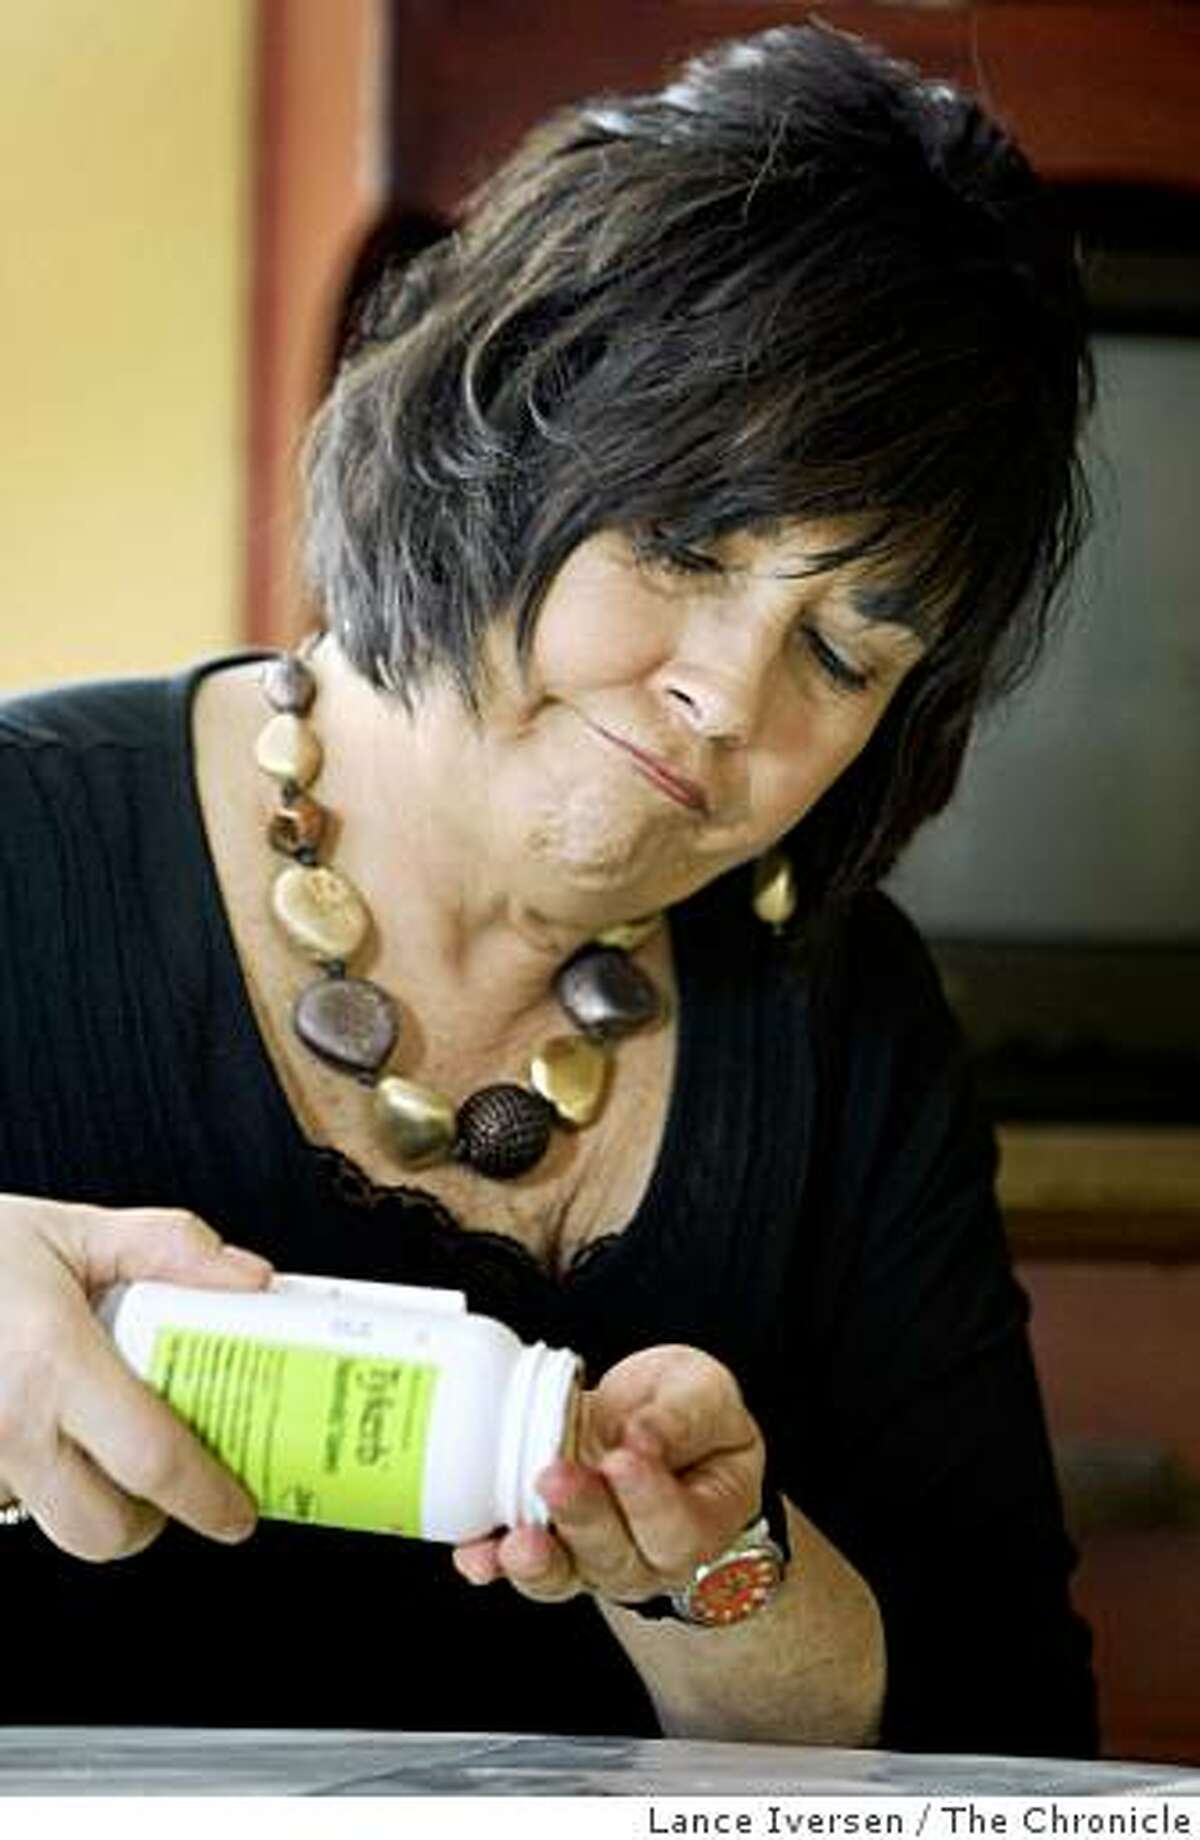 Christine Franklin, a cancer survivor, shows some of the medication she has to take in Vacaville, Calif., on Feb. 4, 2009.